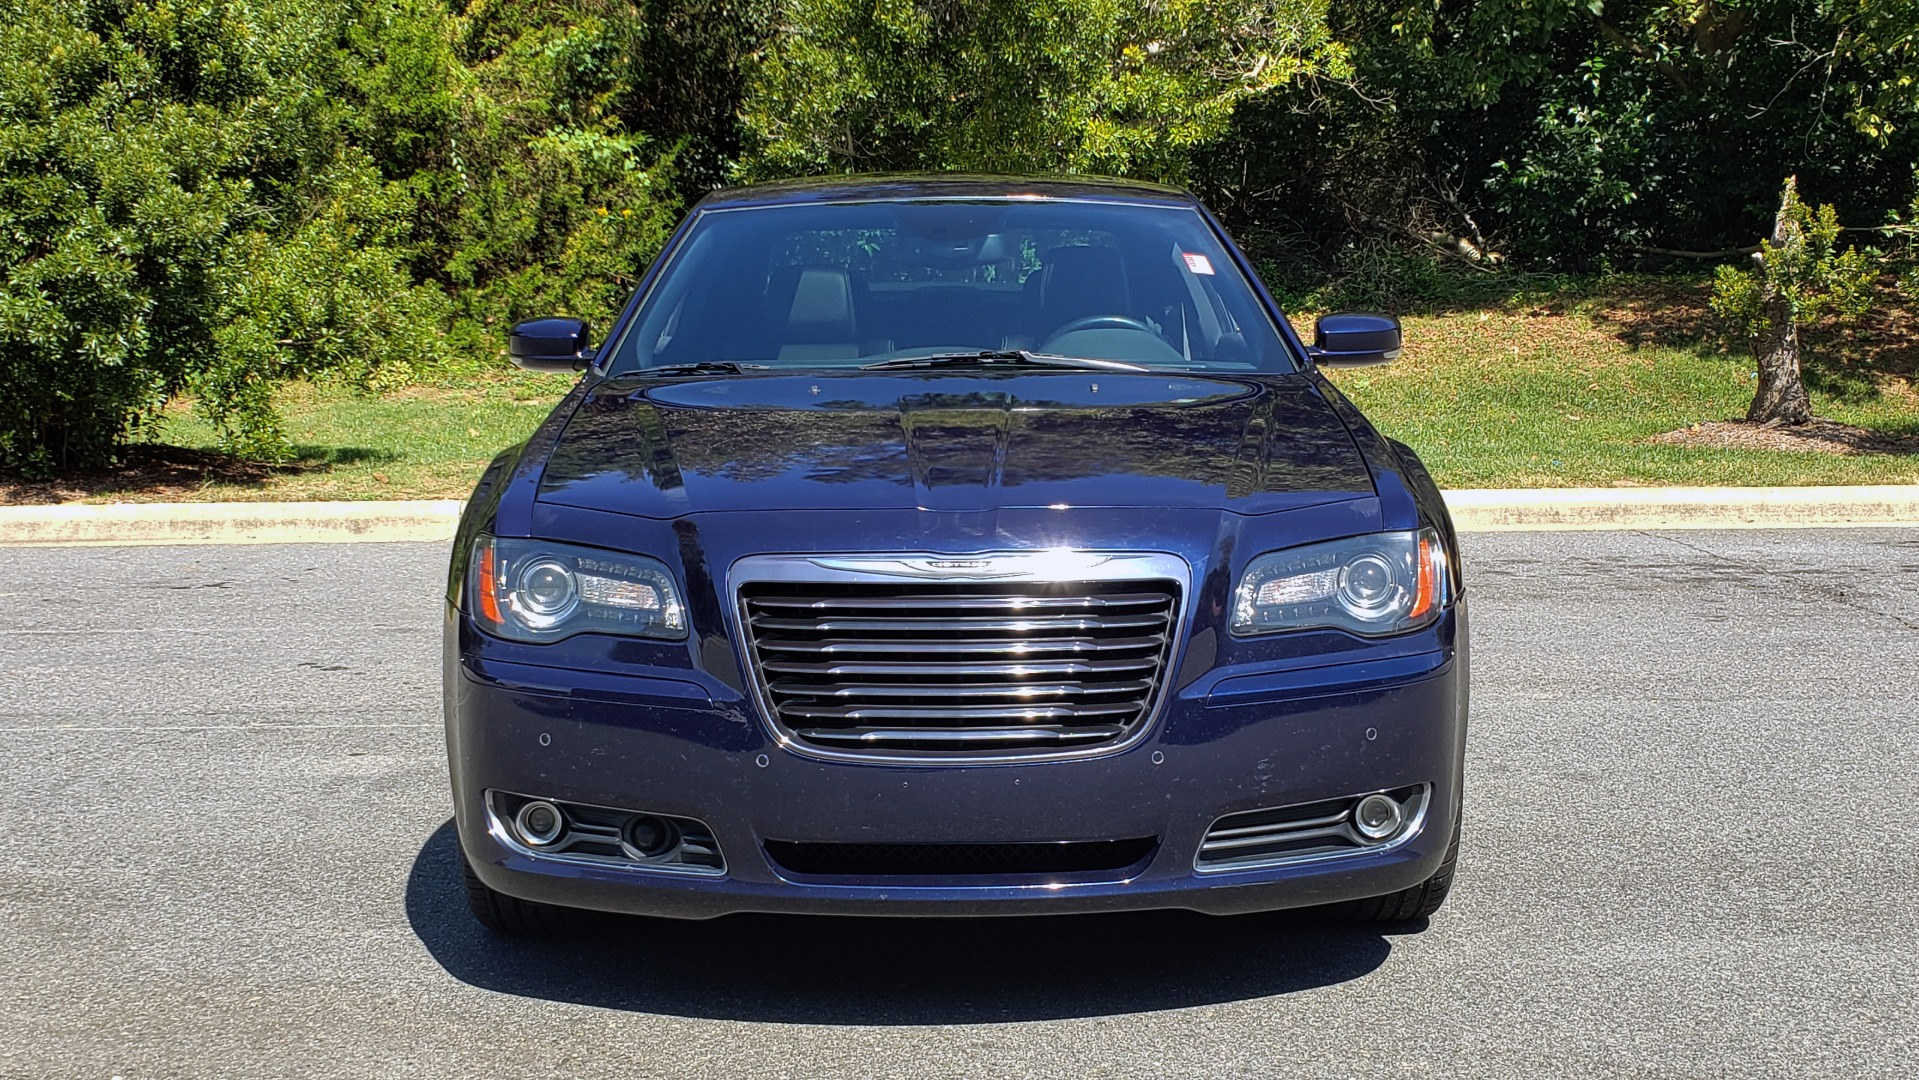 Used 2014 Chrysler 300 S AWD / SAFETY TEC / BLIND SPOT / LIGHT GRP / LUXURY GRP for sale $13,995 at Formula Imports in Charlotte NC 28227 20